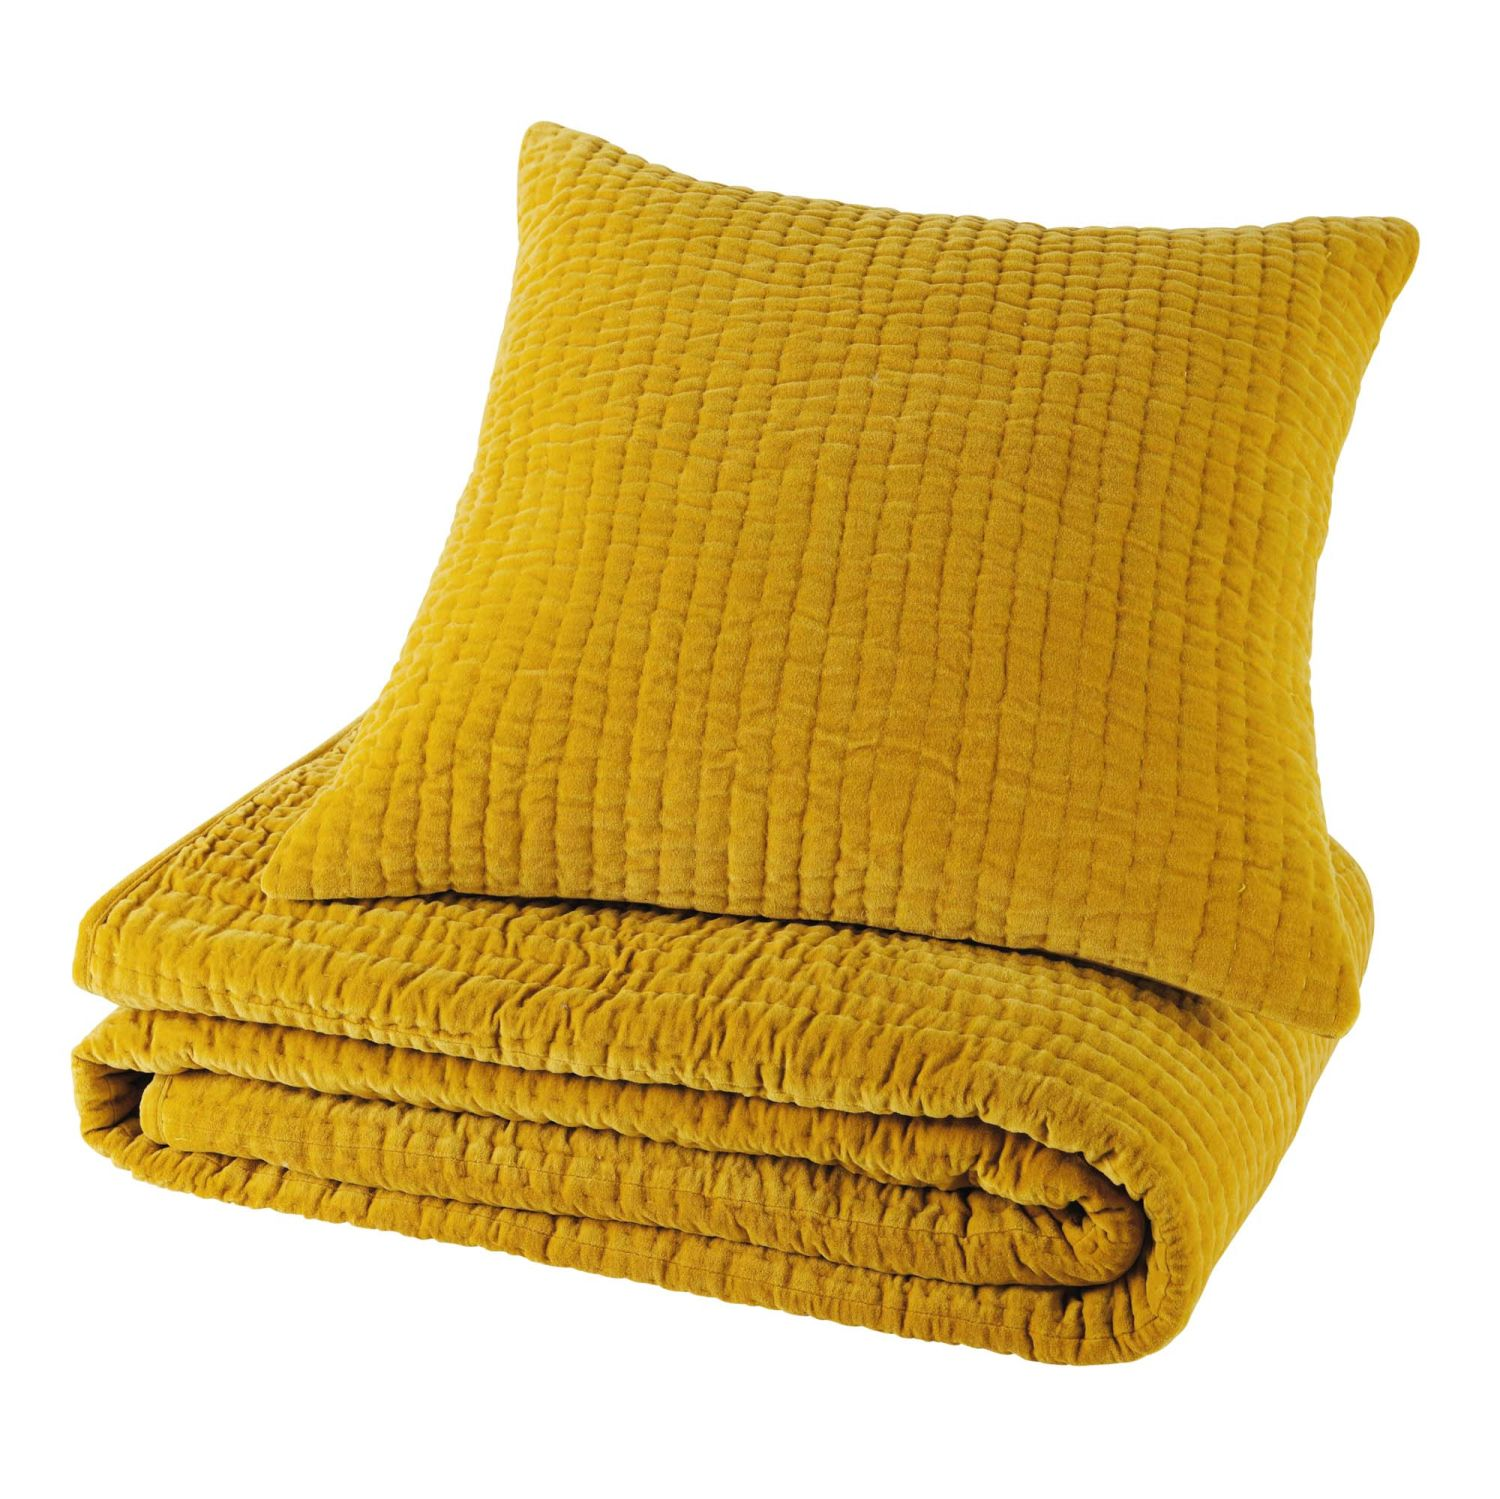 coussin en velours piqu jaune moutarde 60 x 60 cm maisons du monde. Black Bedroom Furniture Sets. Home Design Ideas